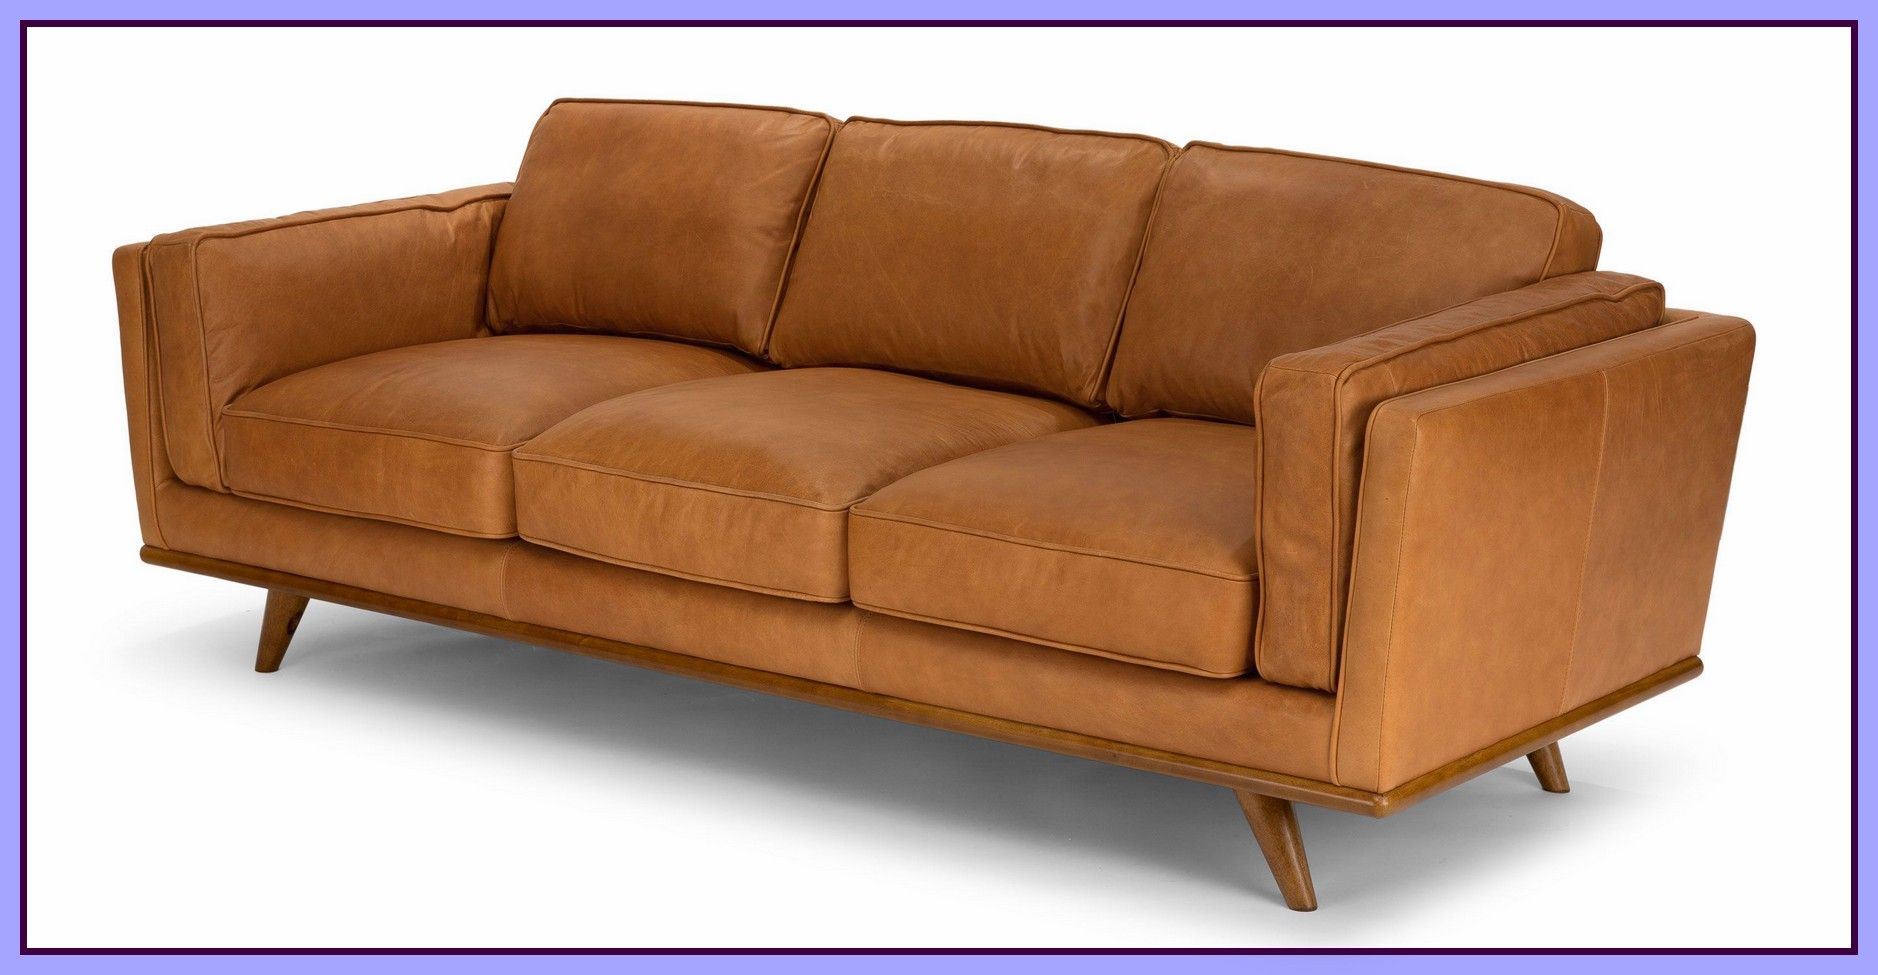 53 Reference Of Article Leather Sofa Reddit In 2020 Tan Leather Sofas Tan Sofa Furniture